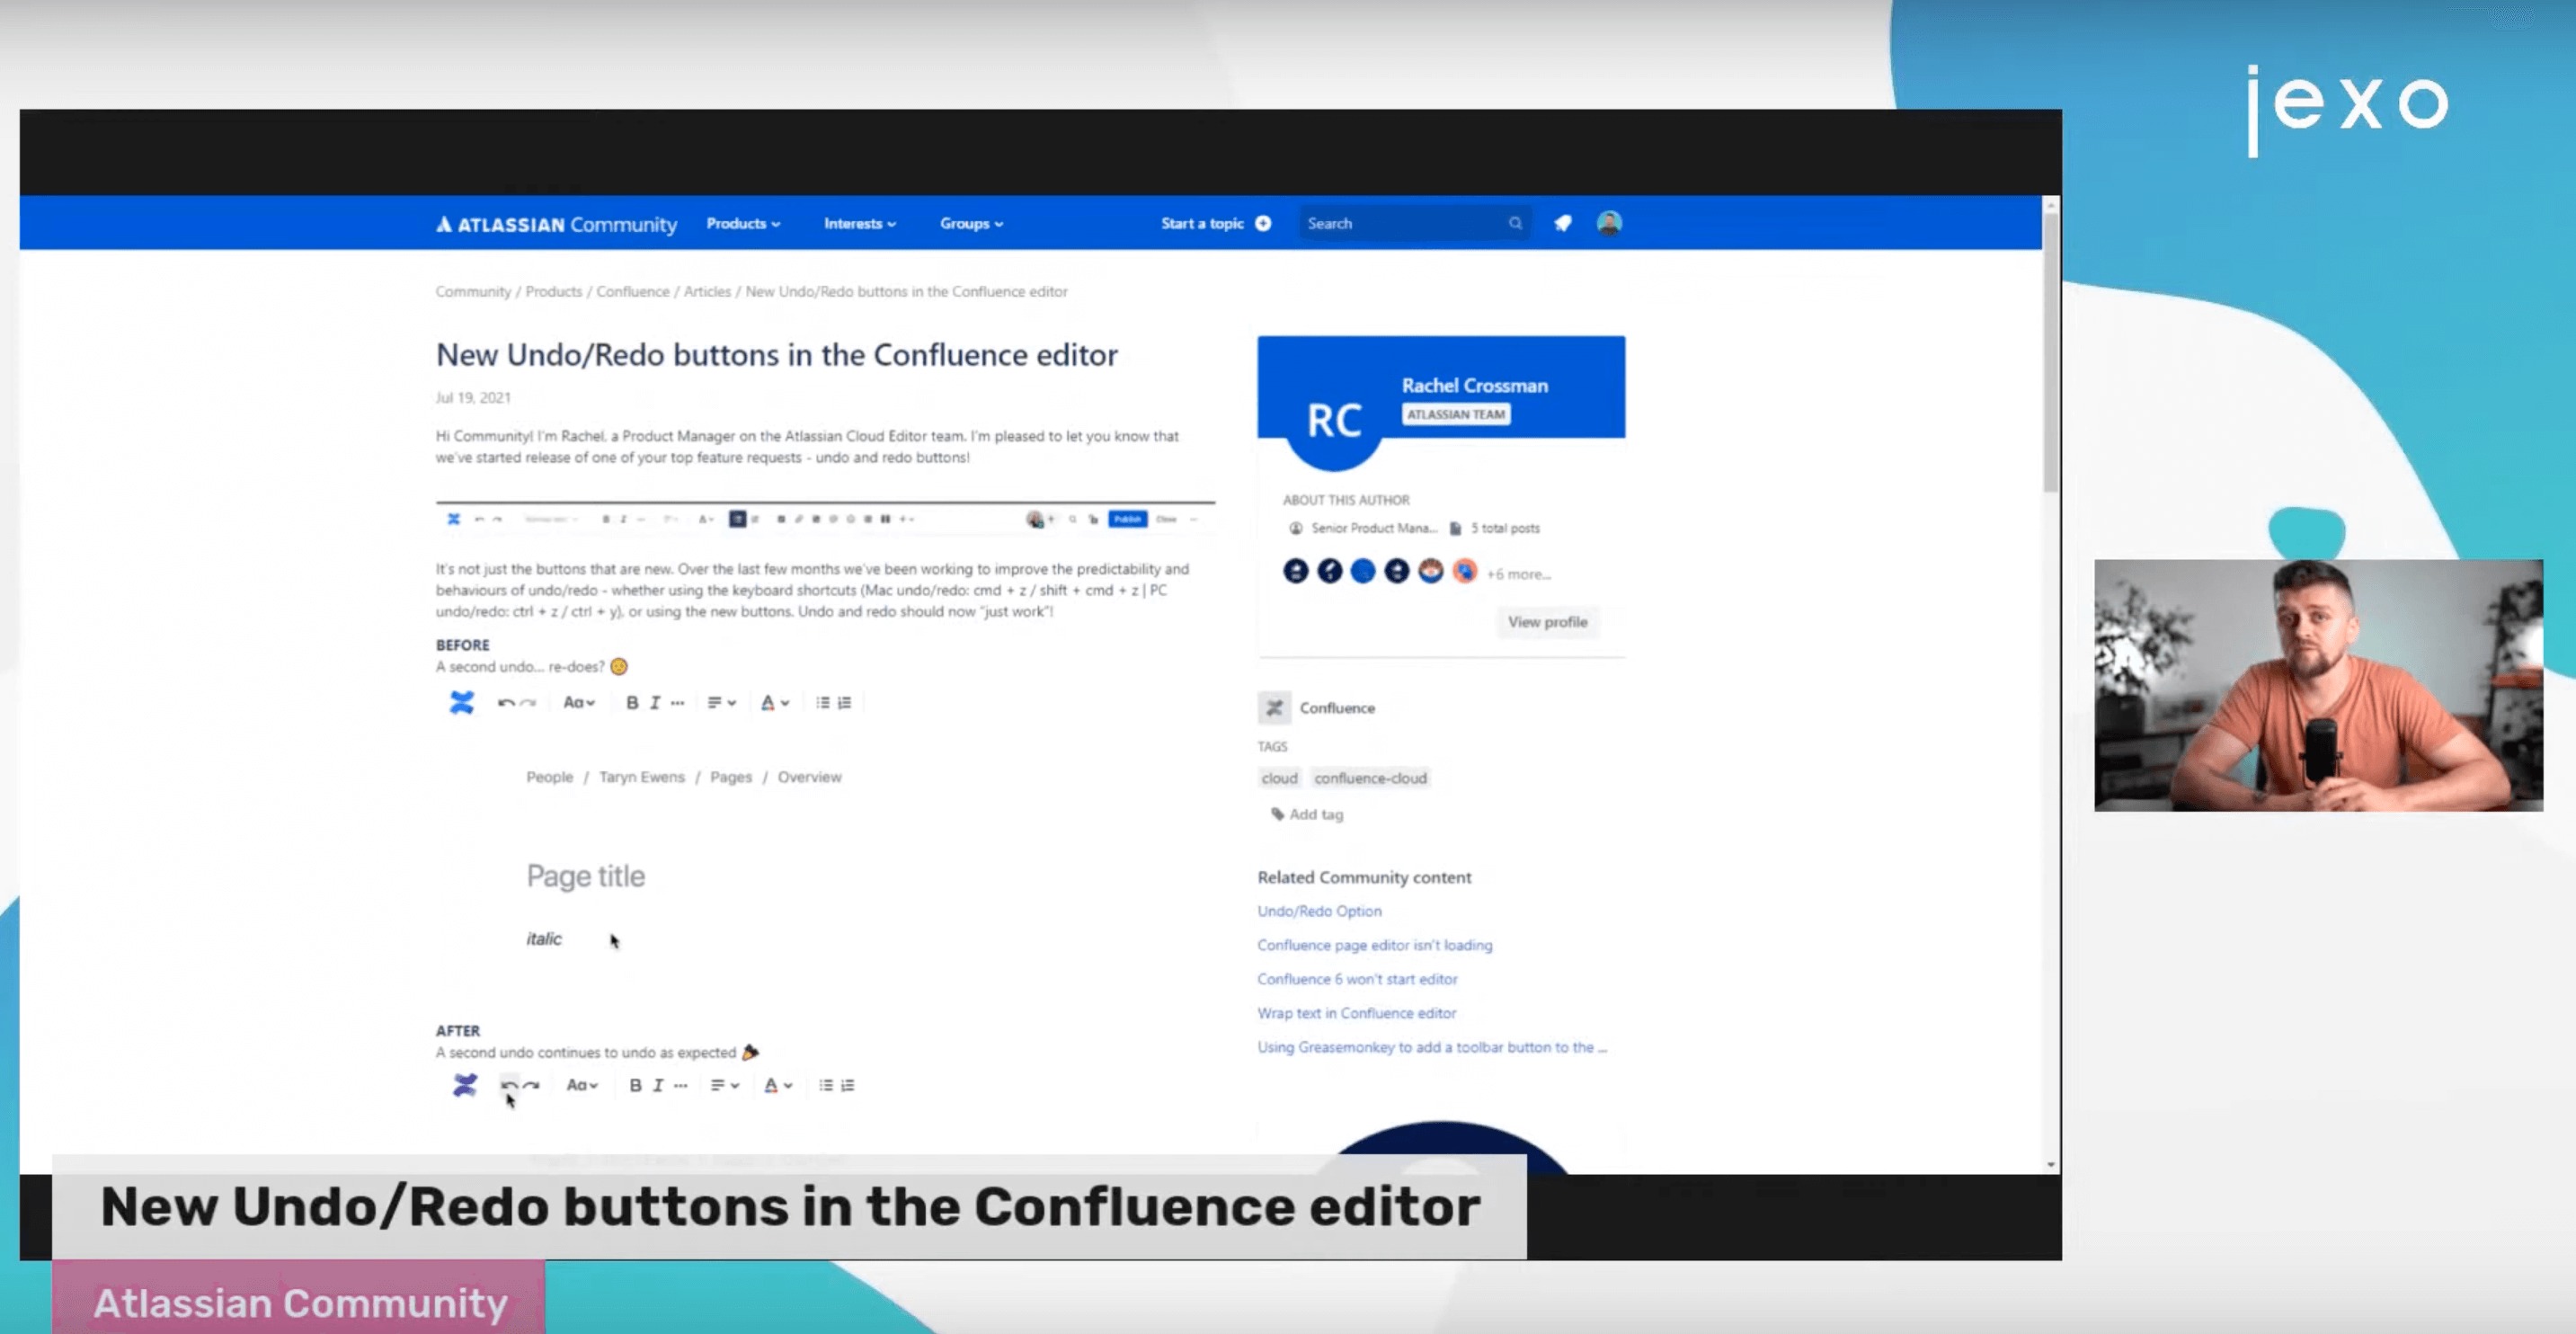 Atlassian News: Undo/redo buttons are being launched to Confluence Cloud